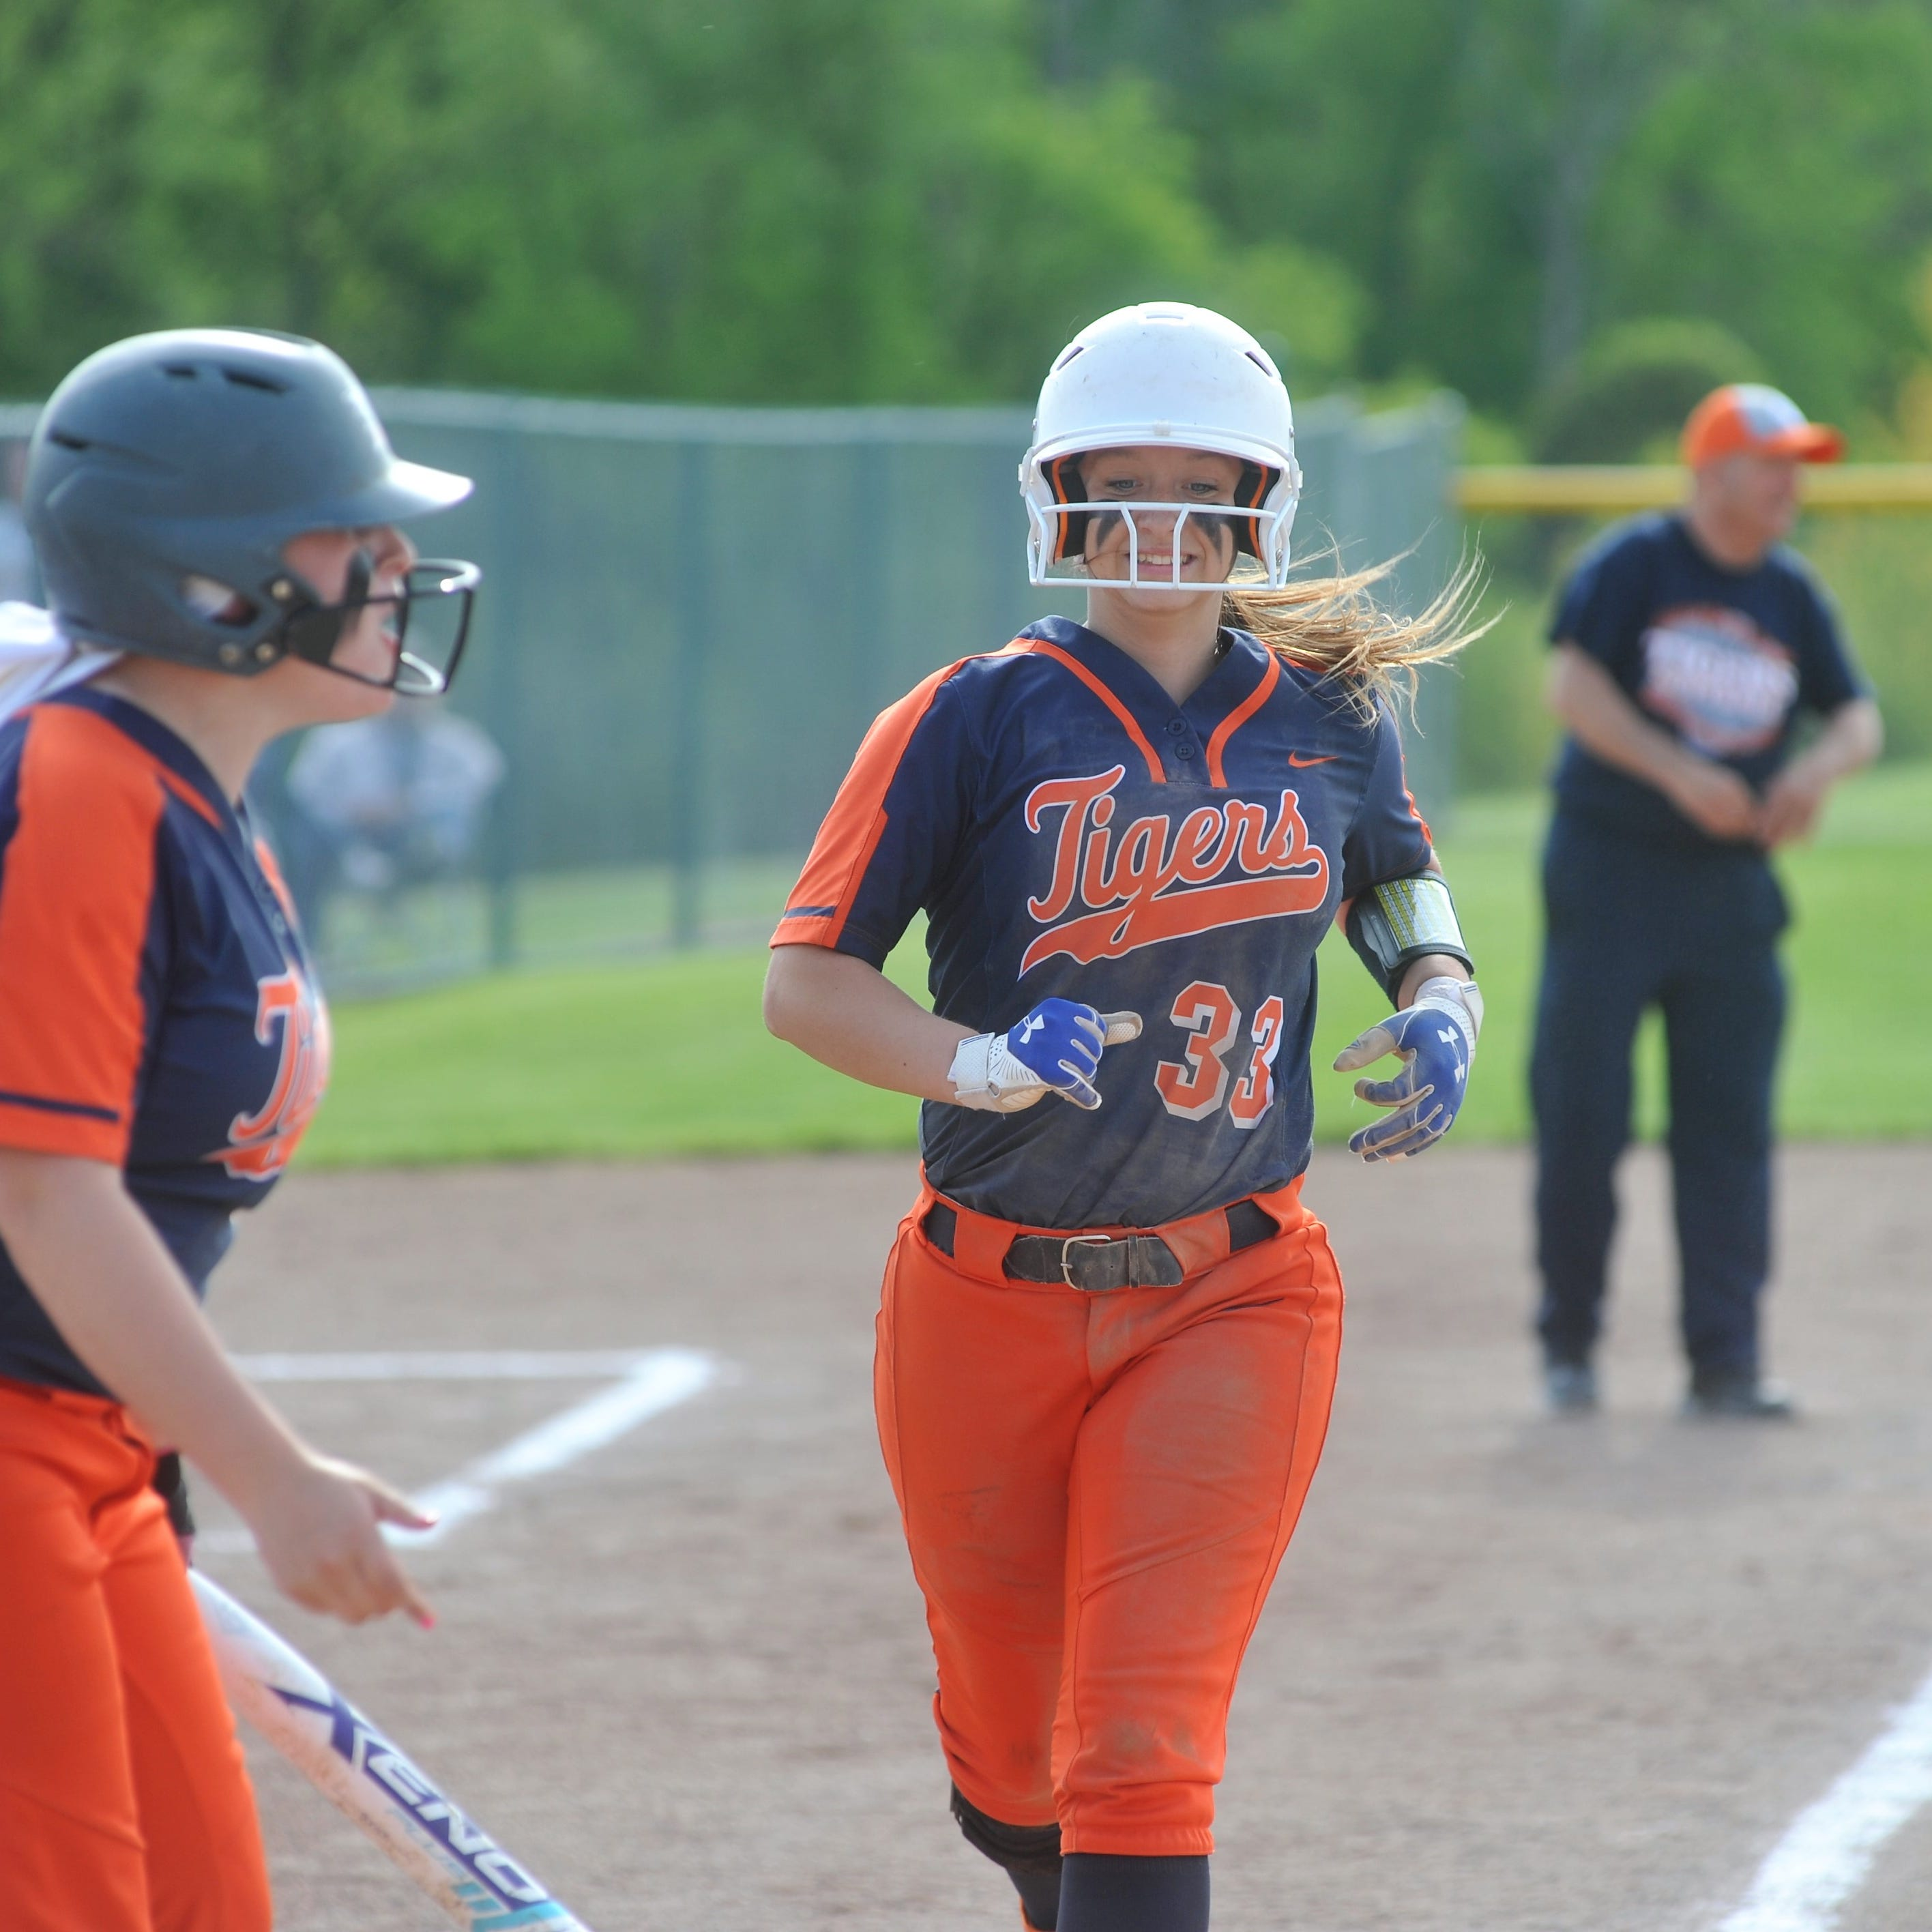 Back-to-back: Five homers power Galion over Bucyrus for district crown